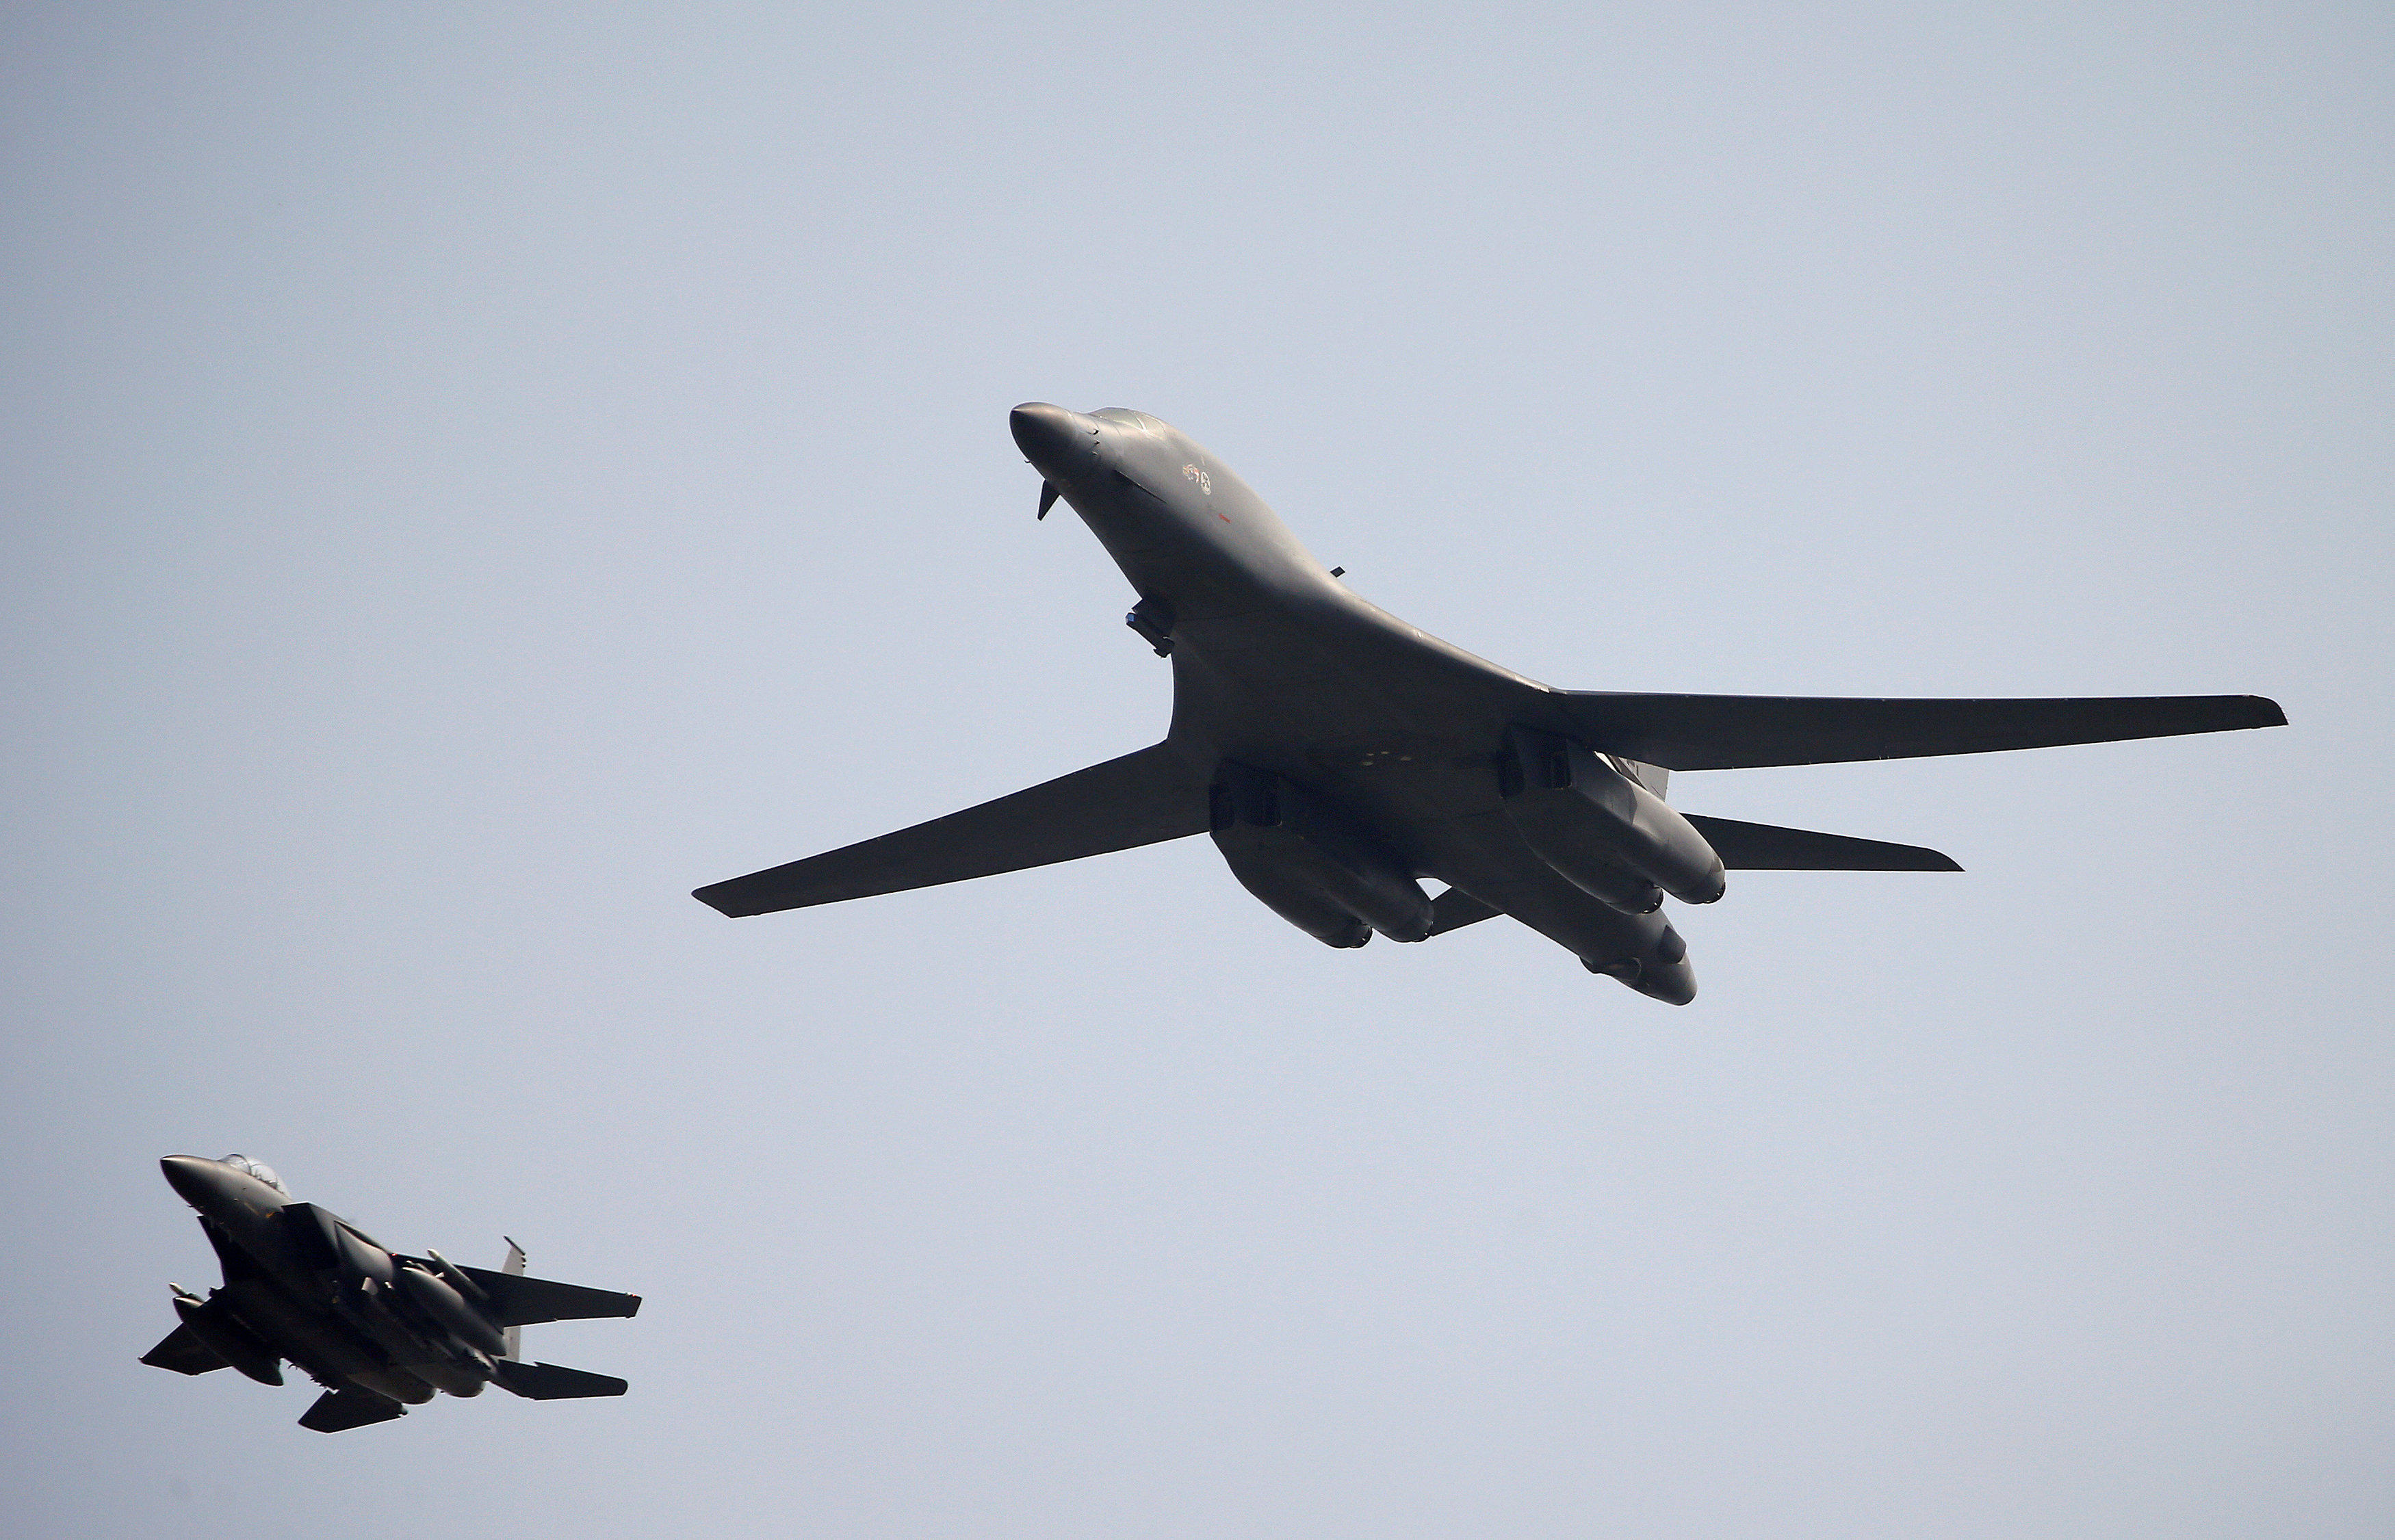 US B-1 bombers fly near North Korea